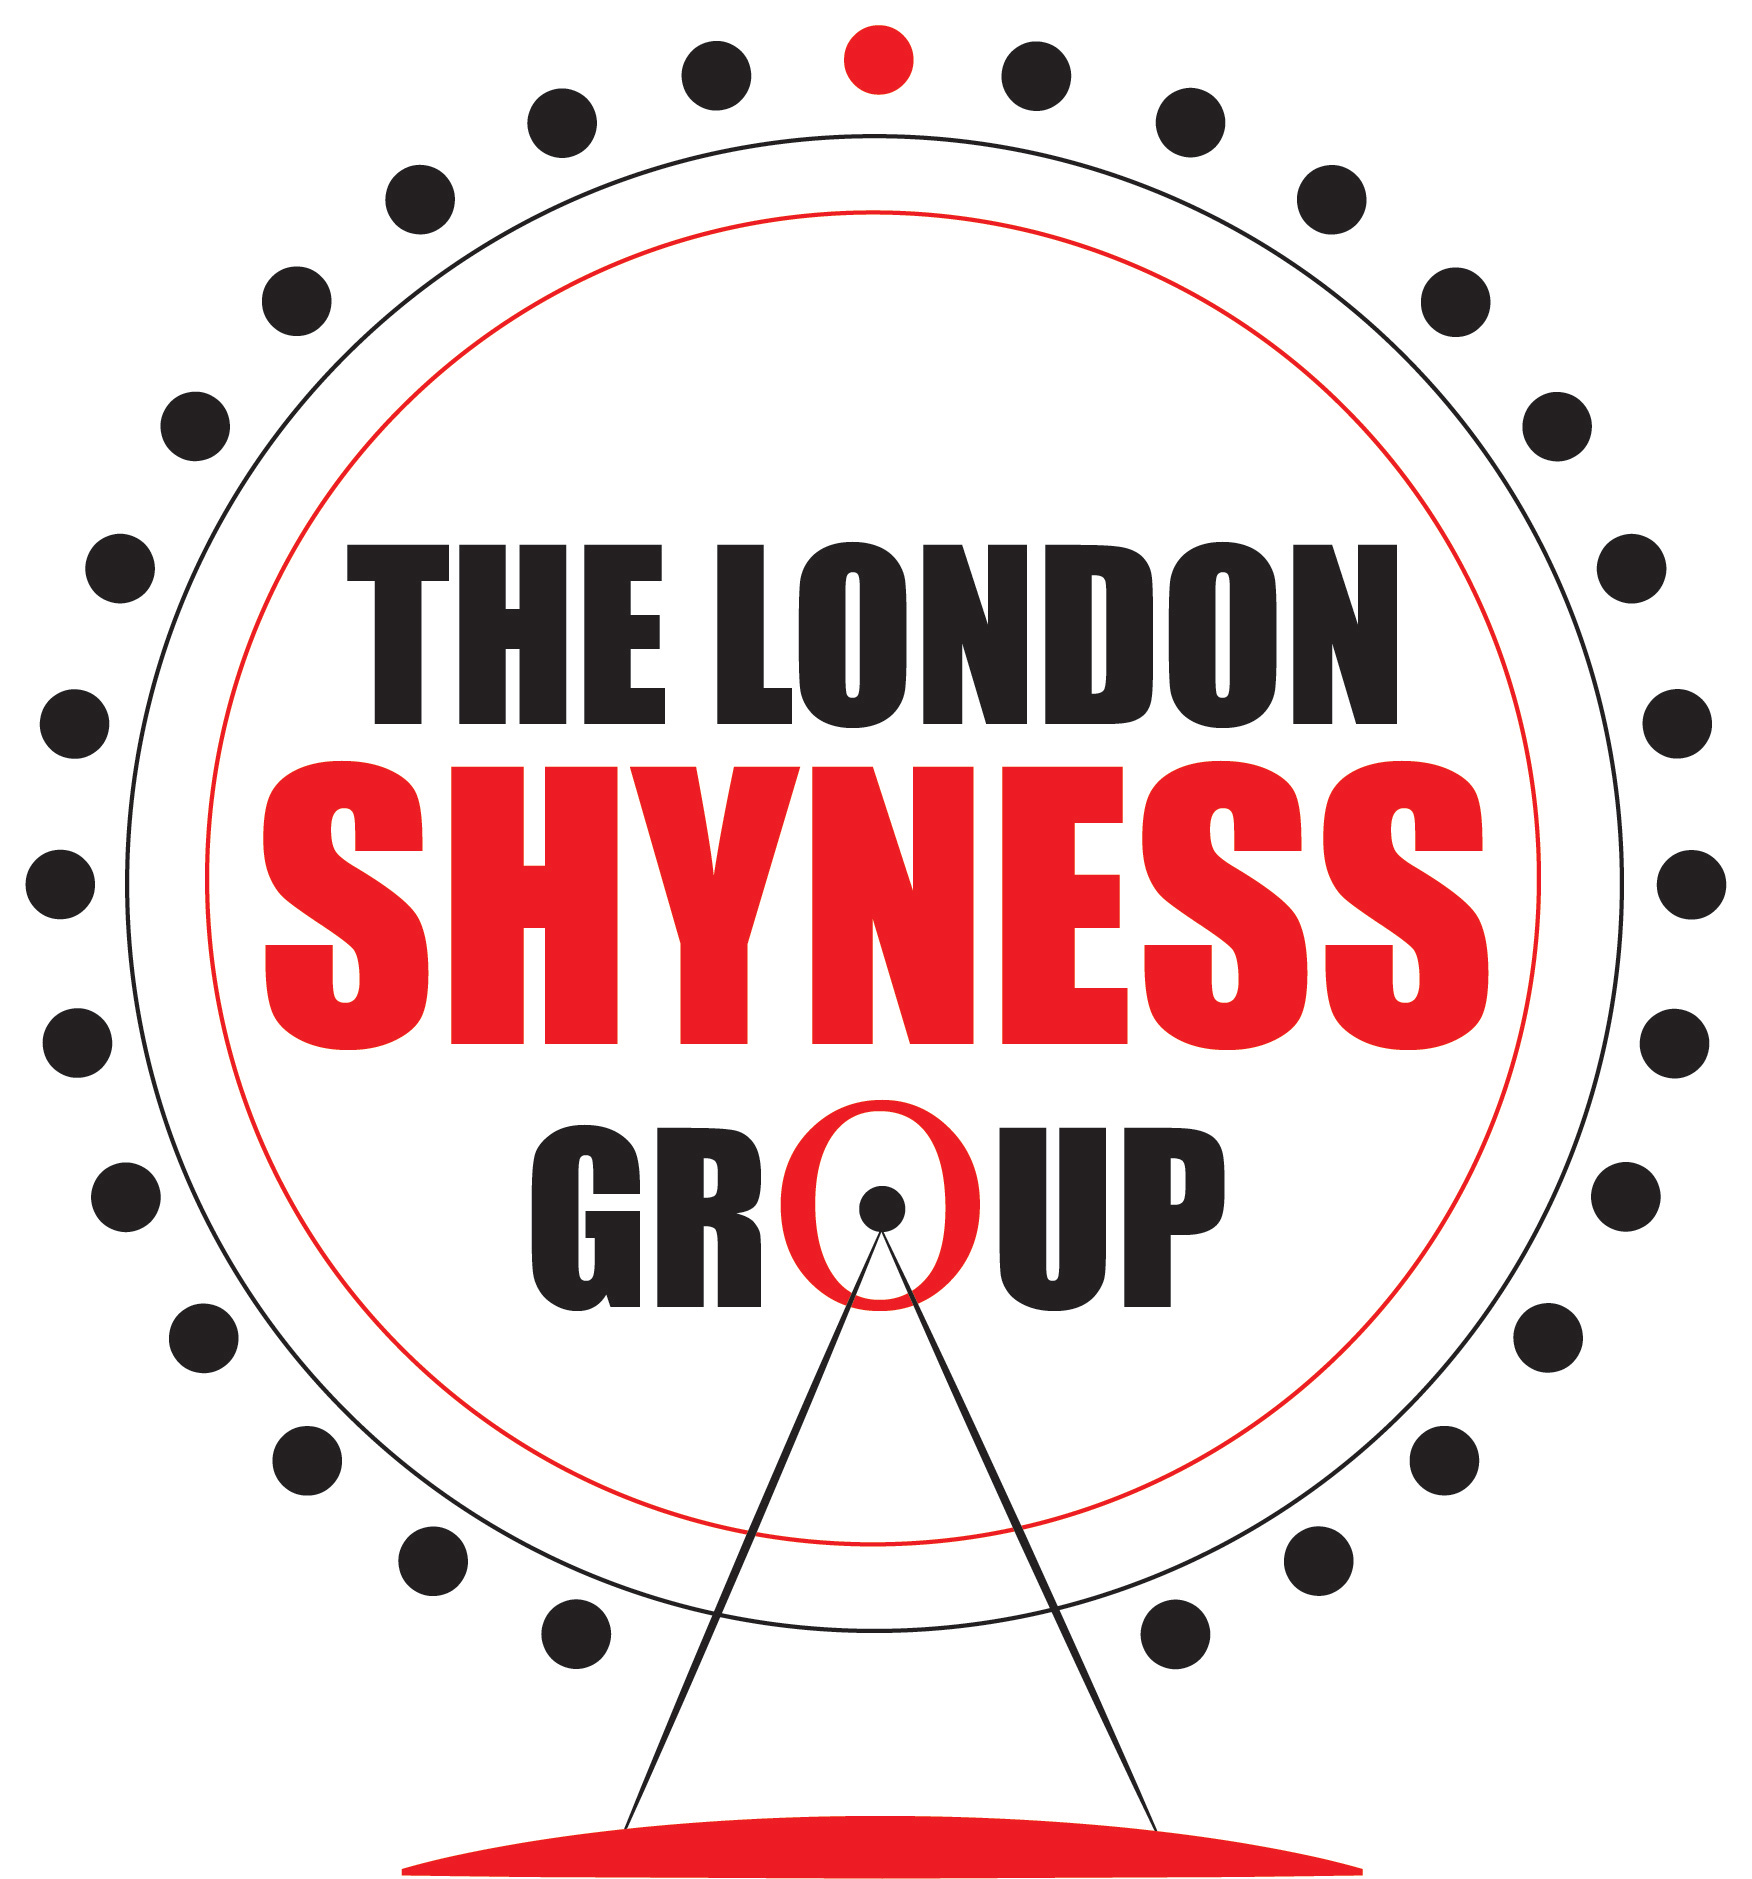 The London Shyness Group logo